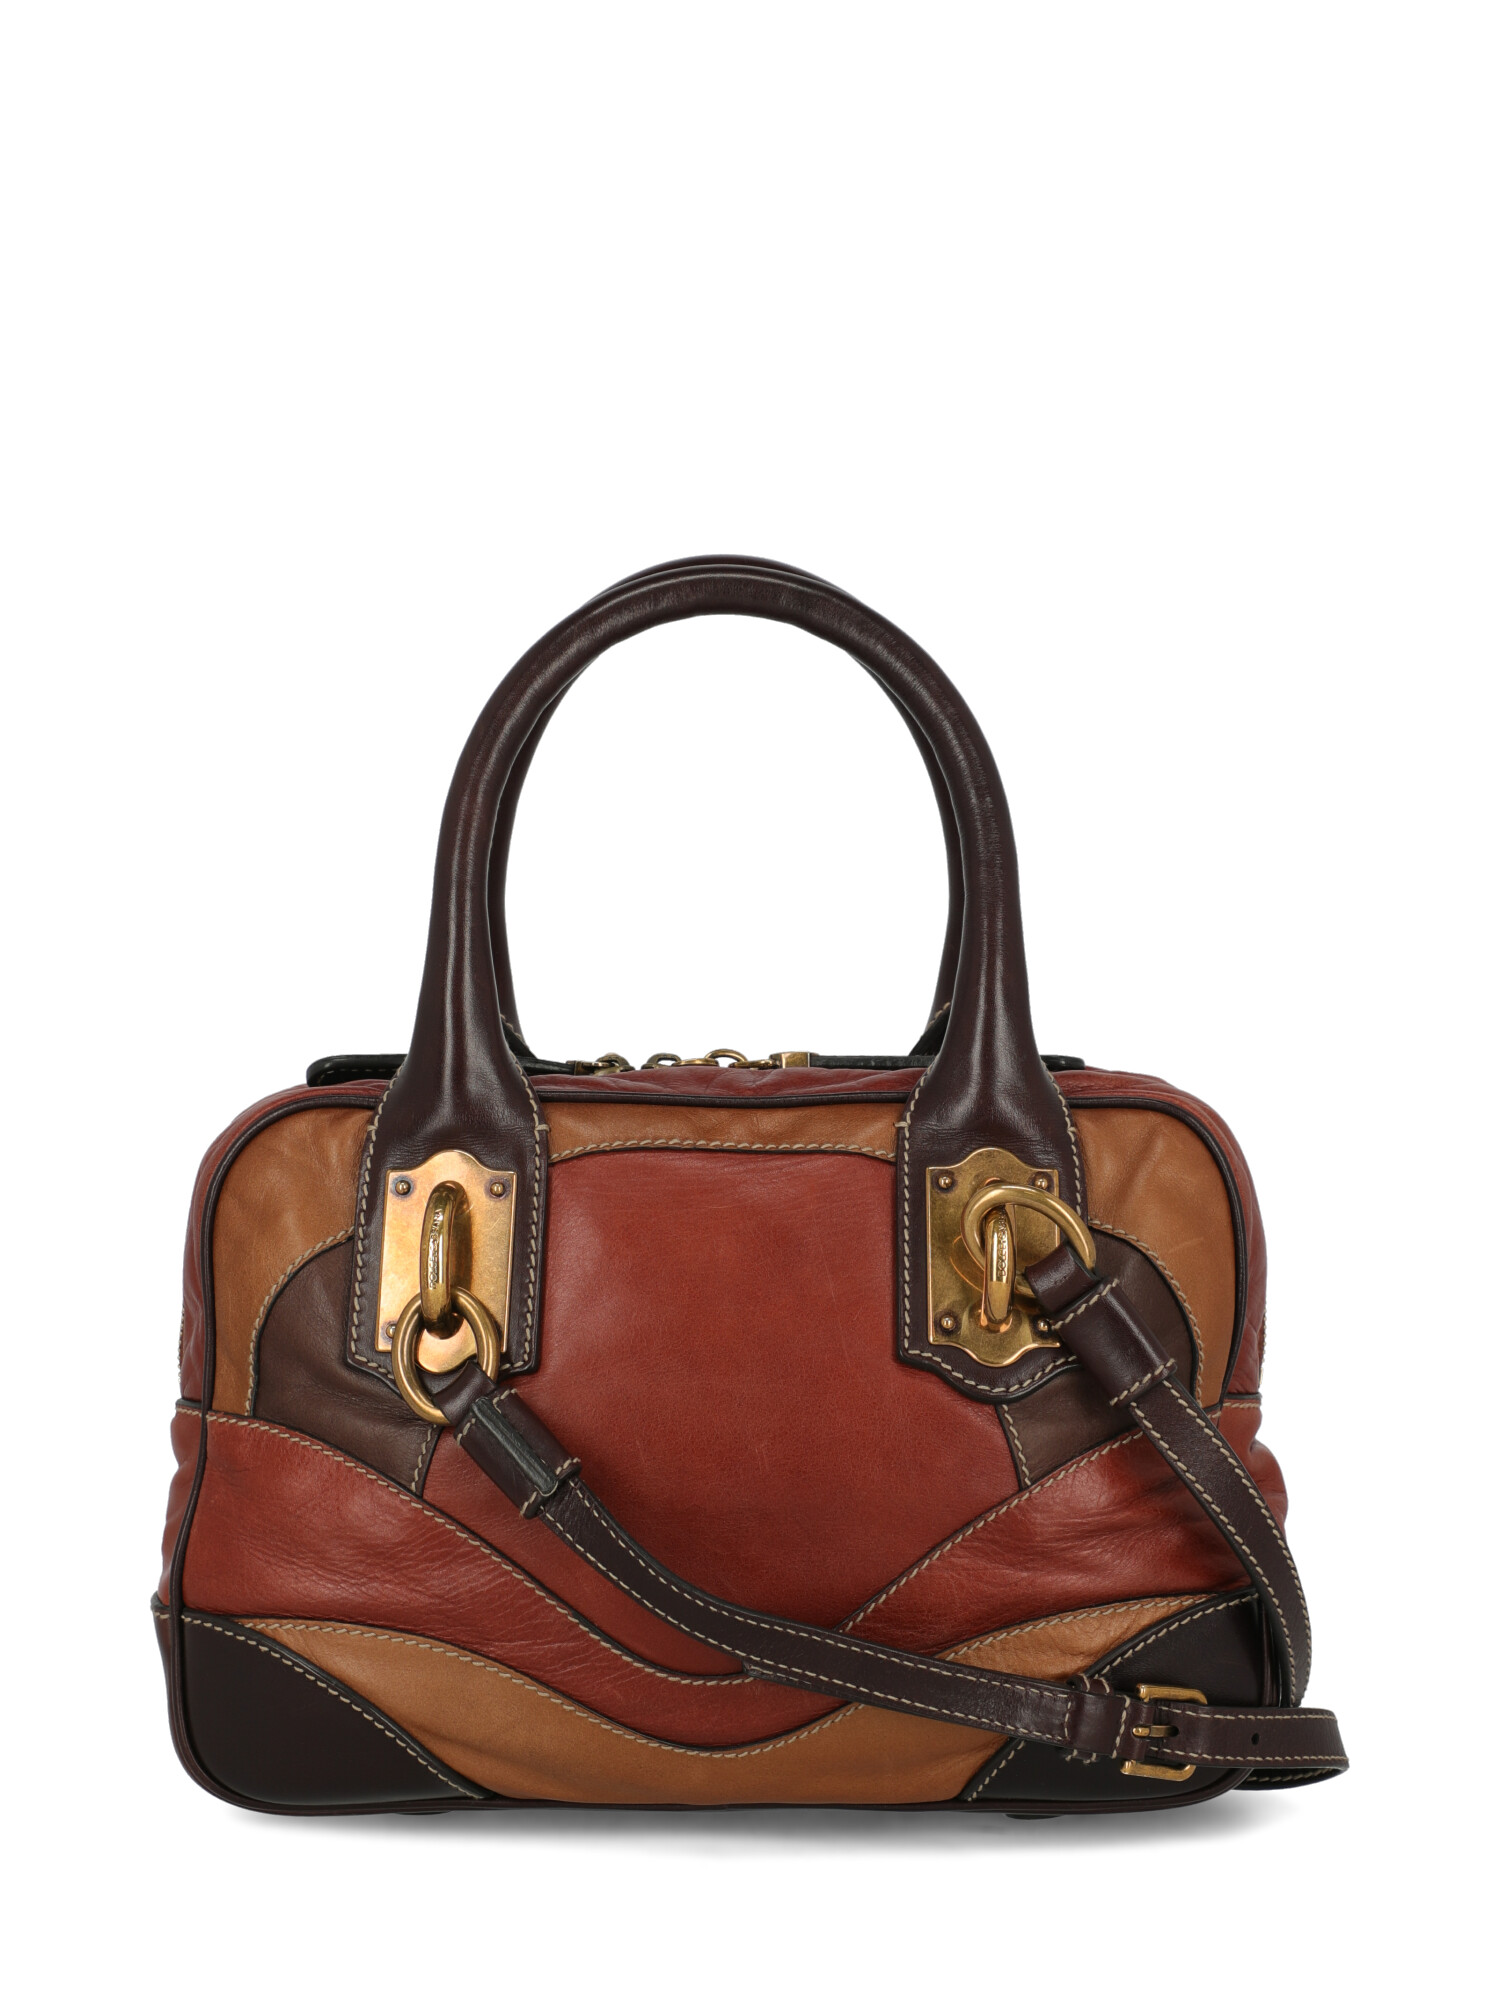 Pre-owned Dolce & Gabbana Shoulder Bag In Brown